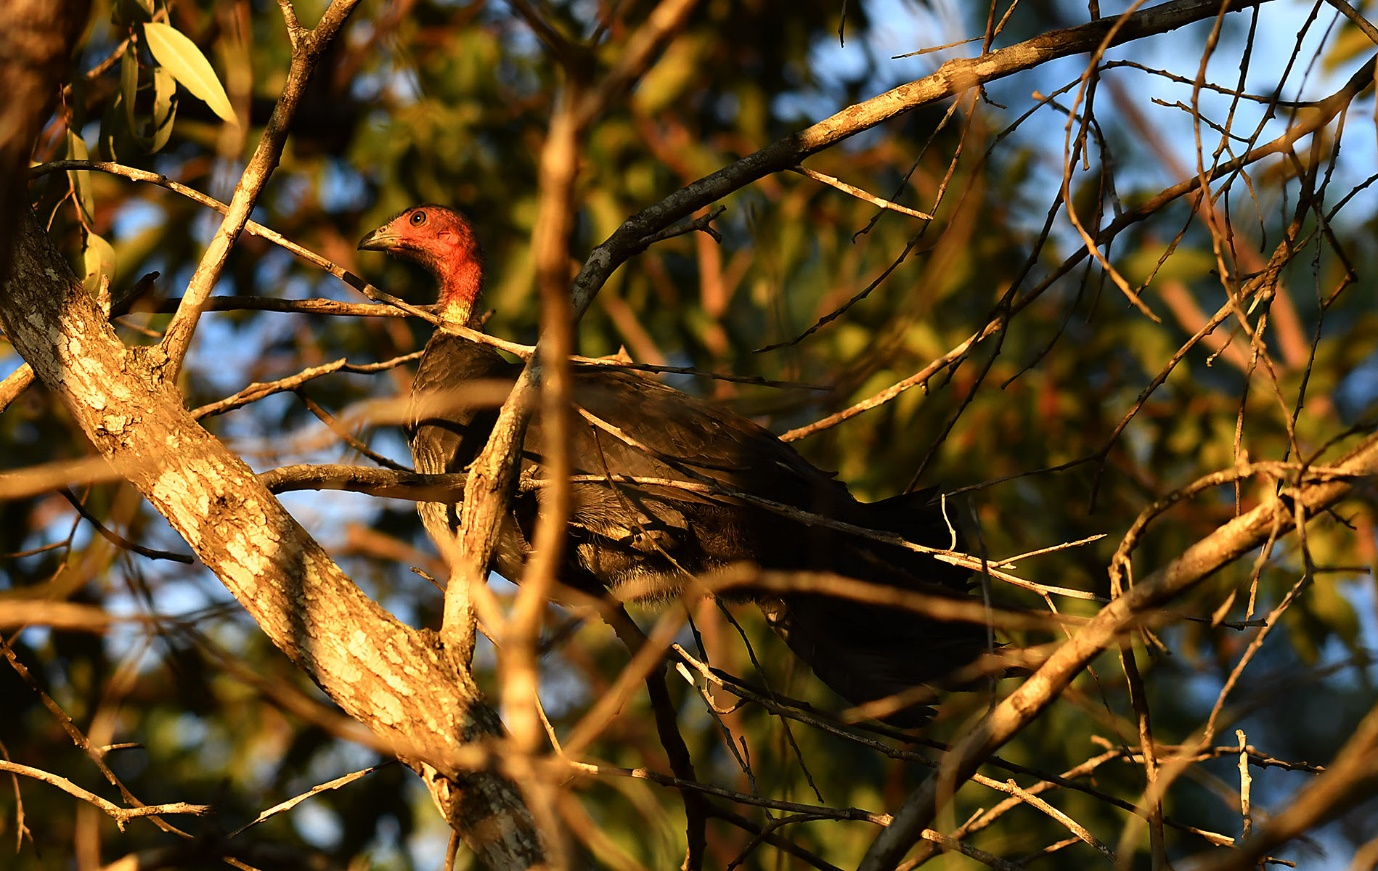 Brush turkey – usually found on the ground, not in a tree!